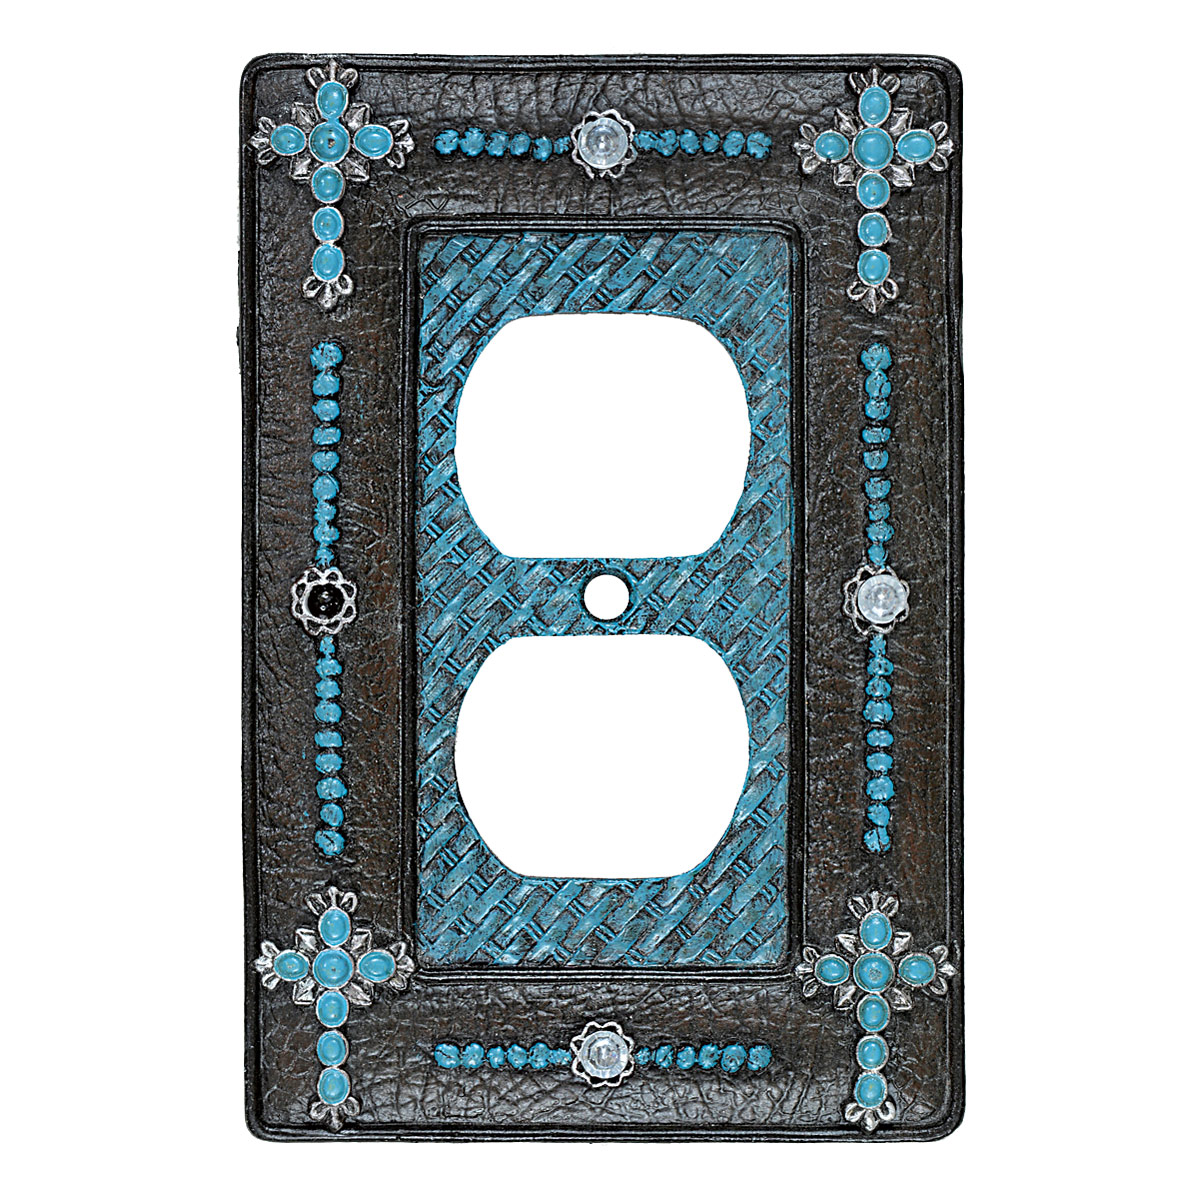 Turquoise Cross & Weave Outlet Cover - CLEARANCE